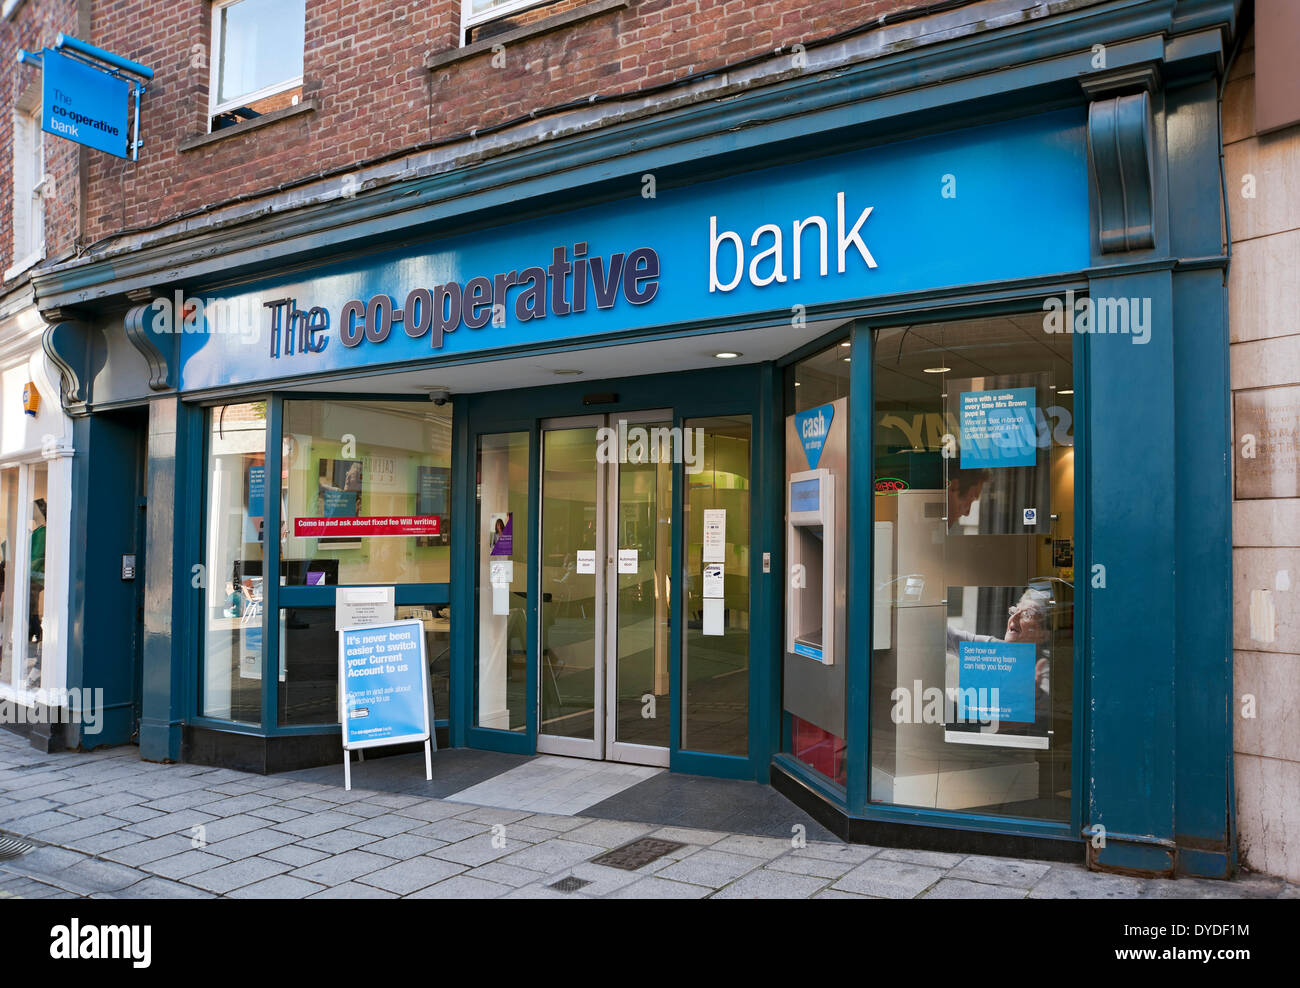 Branch of The Co-operative Bank. - Stock Image